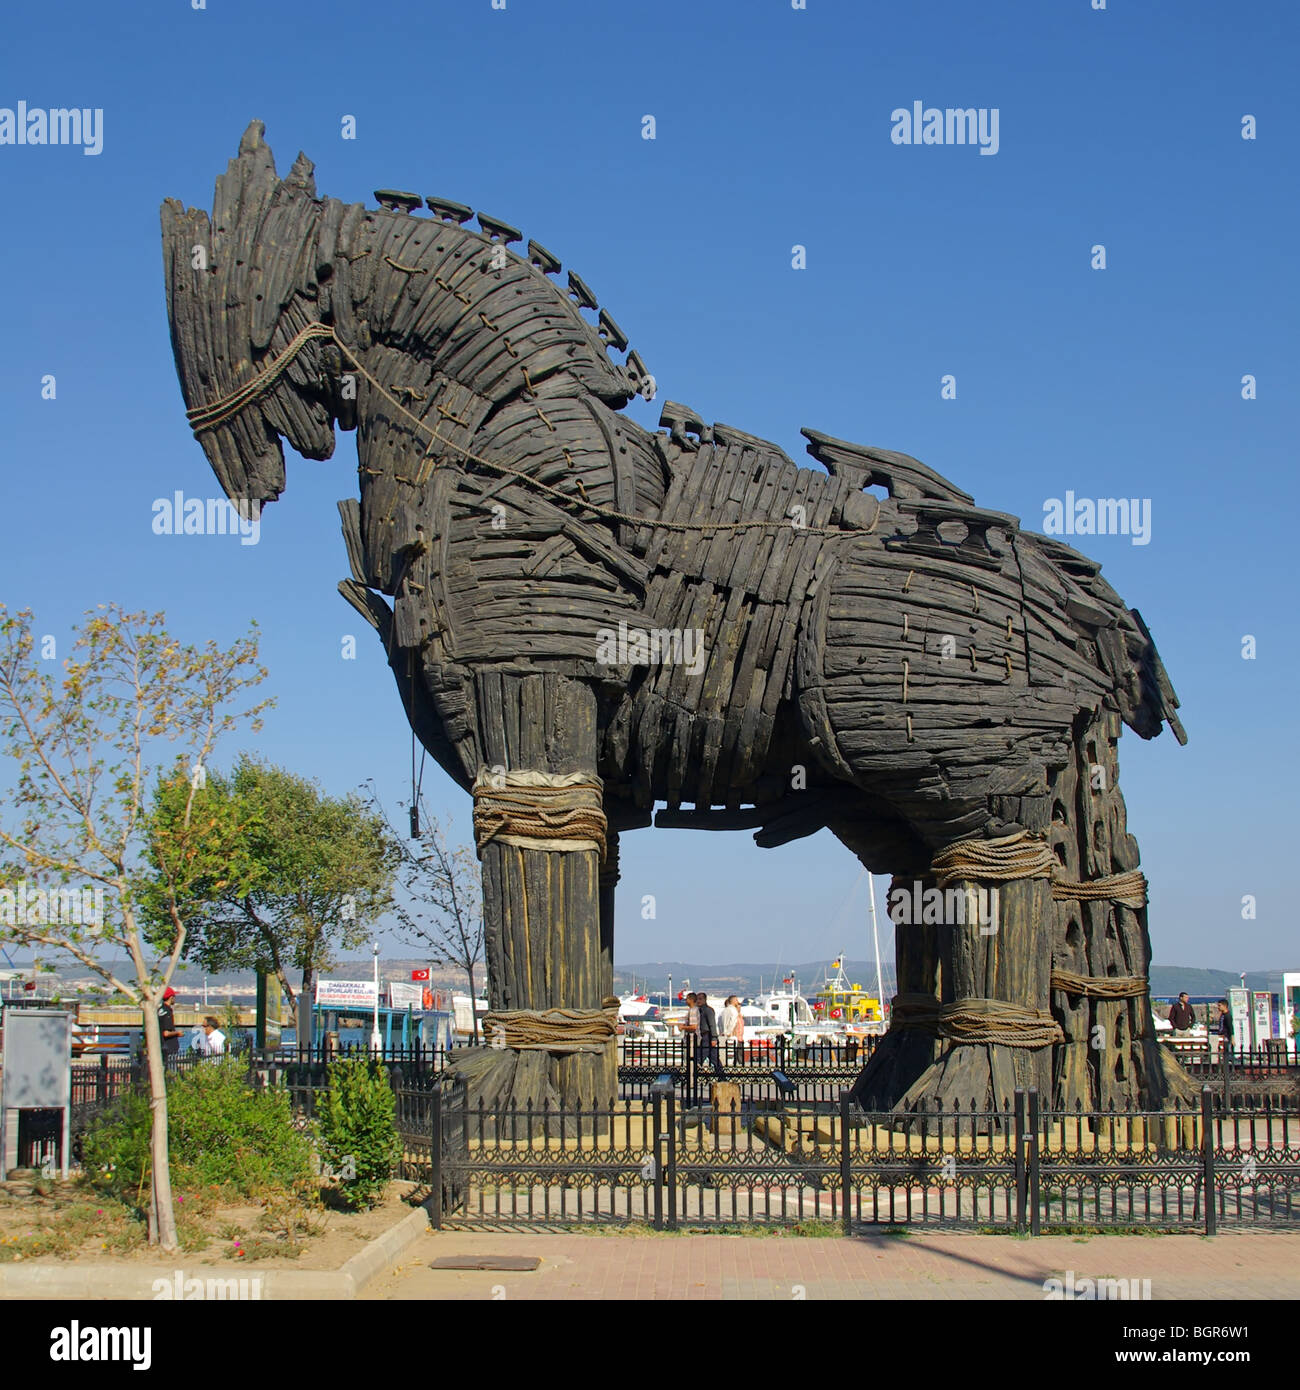 how to build a trojan horse